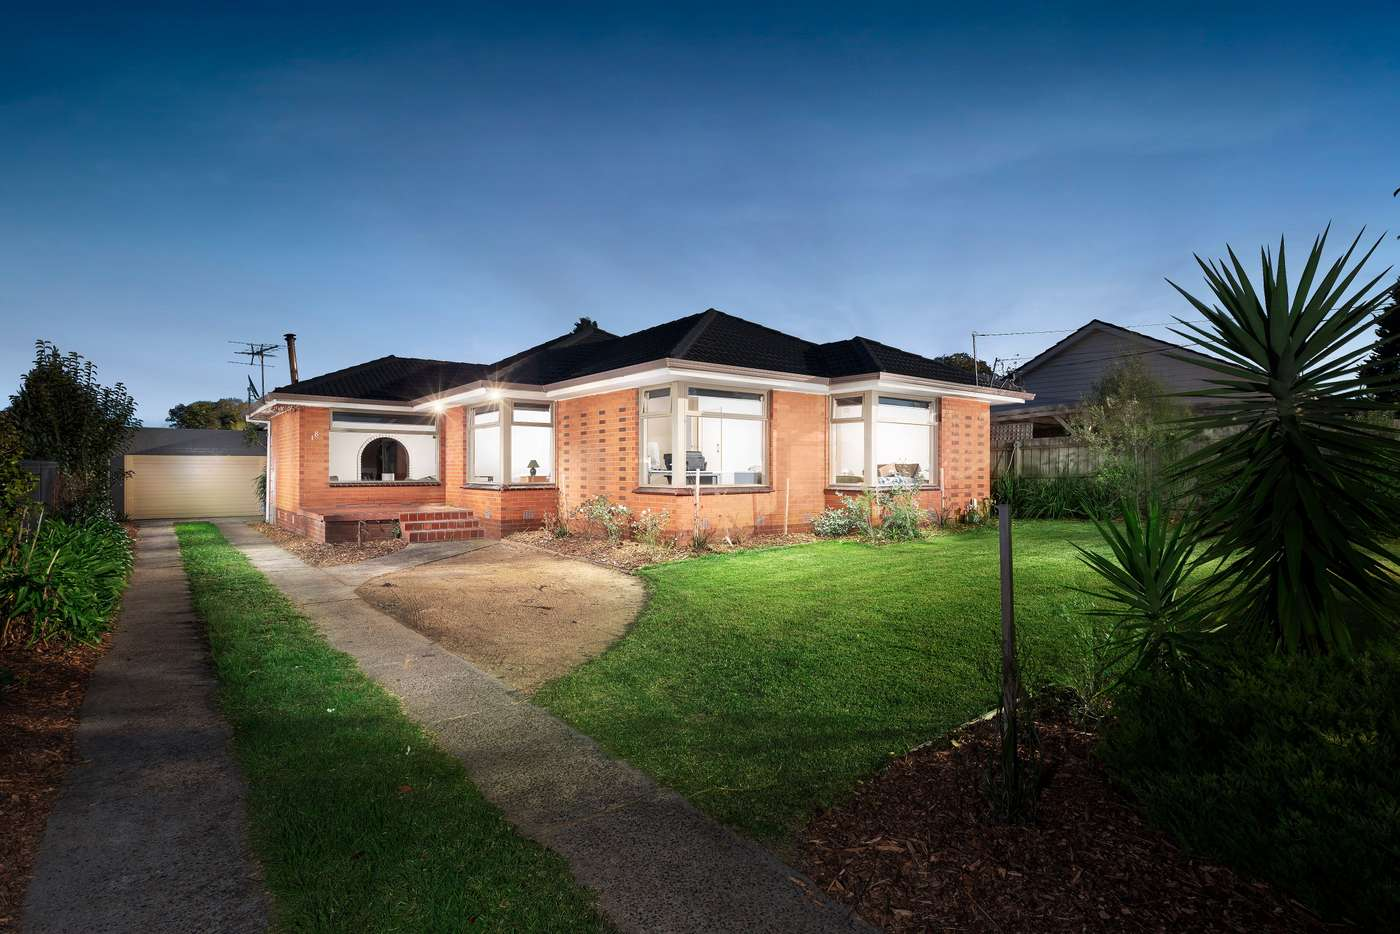 Main view of Homely house listing, 18 Merrill Street, Mulgrave VIC 3170